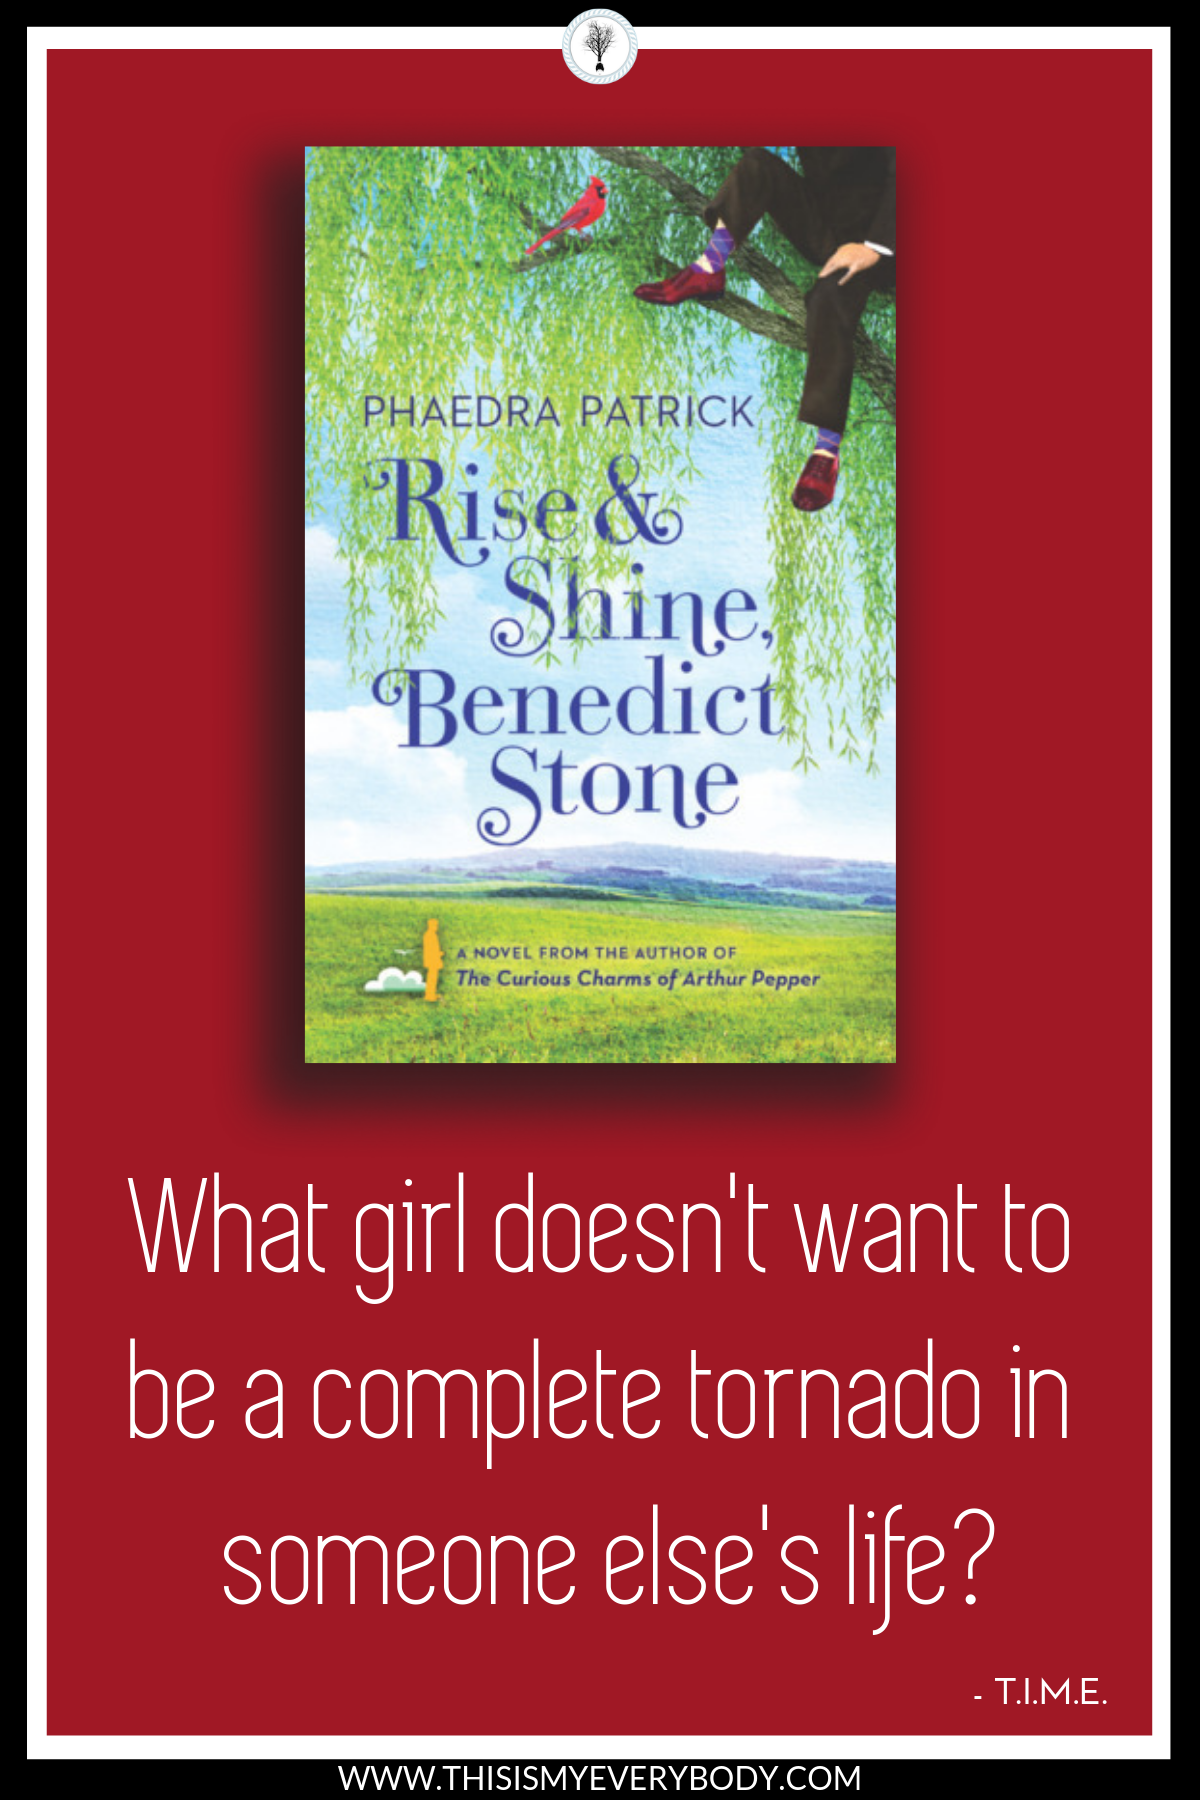 What girl doesn't want to be a complete tornado in someone else's life? Dive in and start taking notes from a master force of nature… Rise & Shine, Benedict Stone by Phaedra Patrick